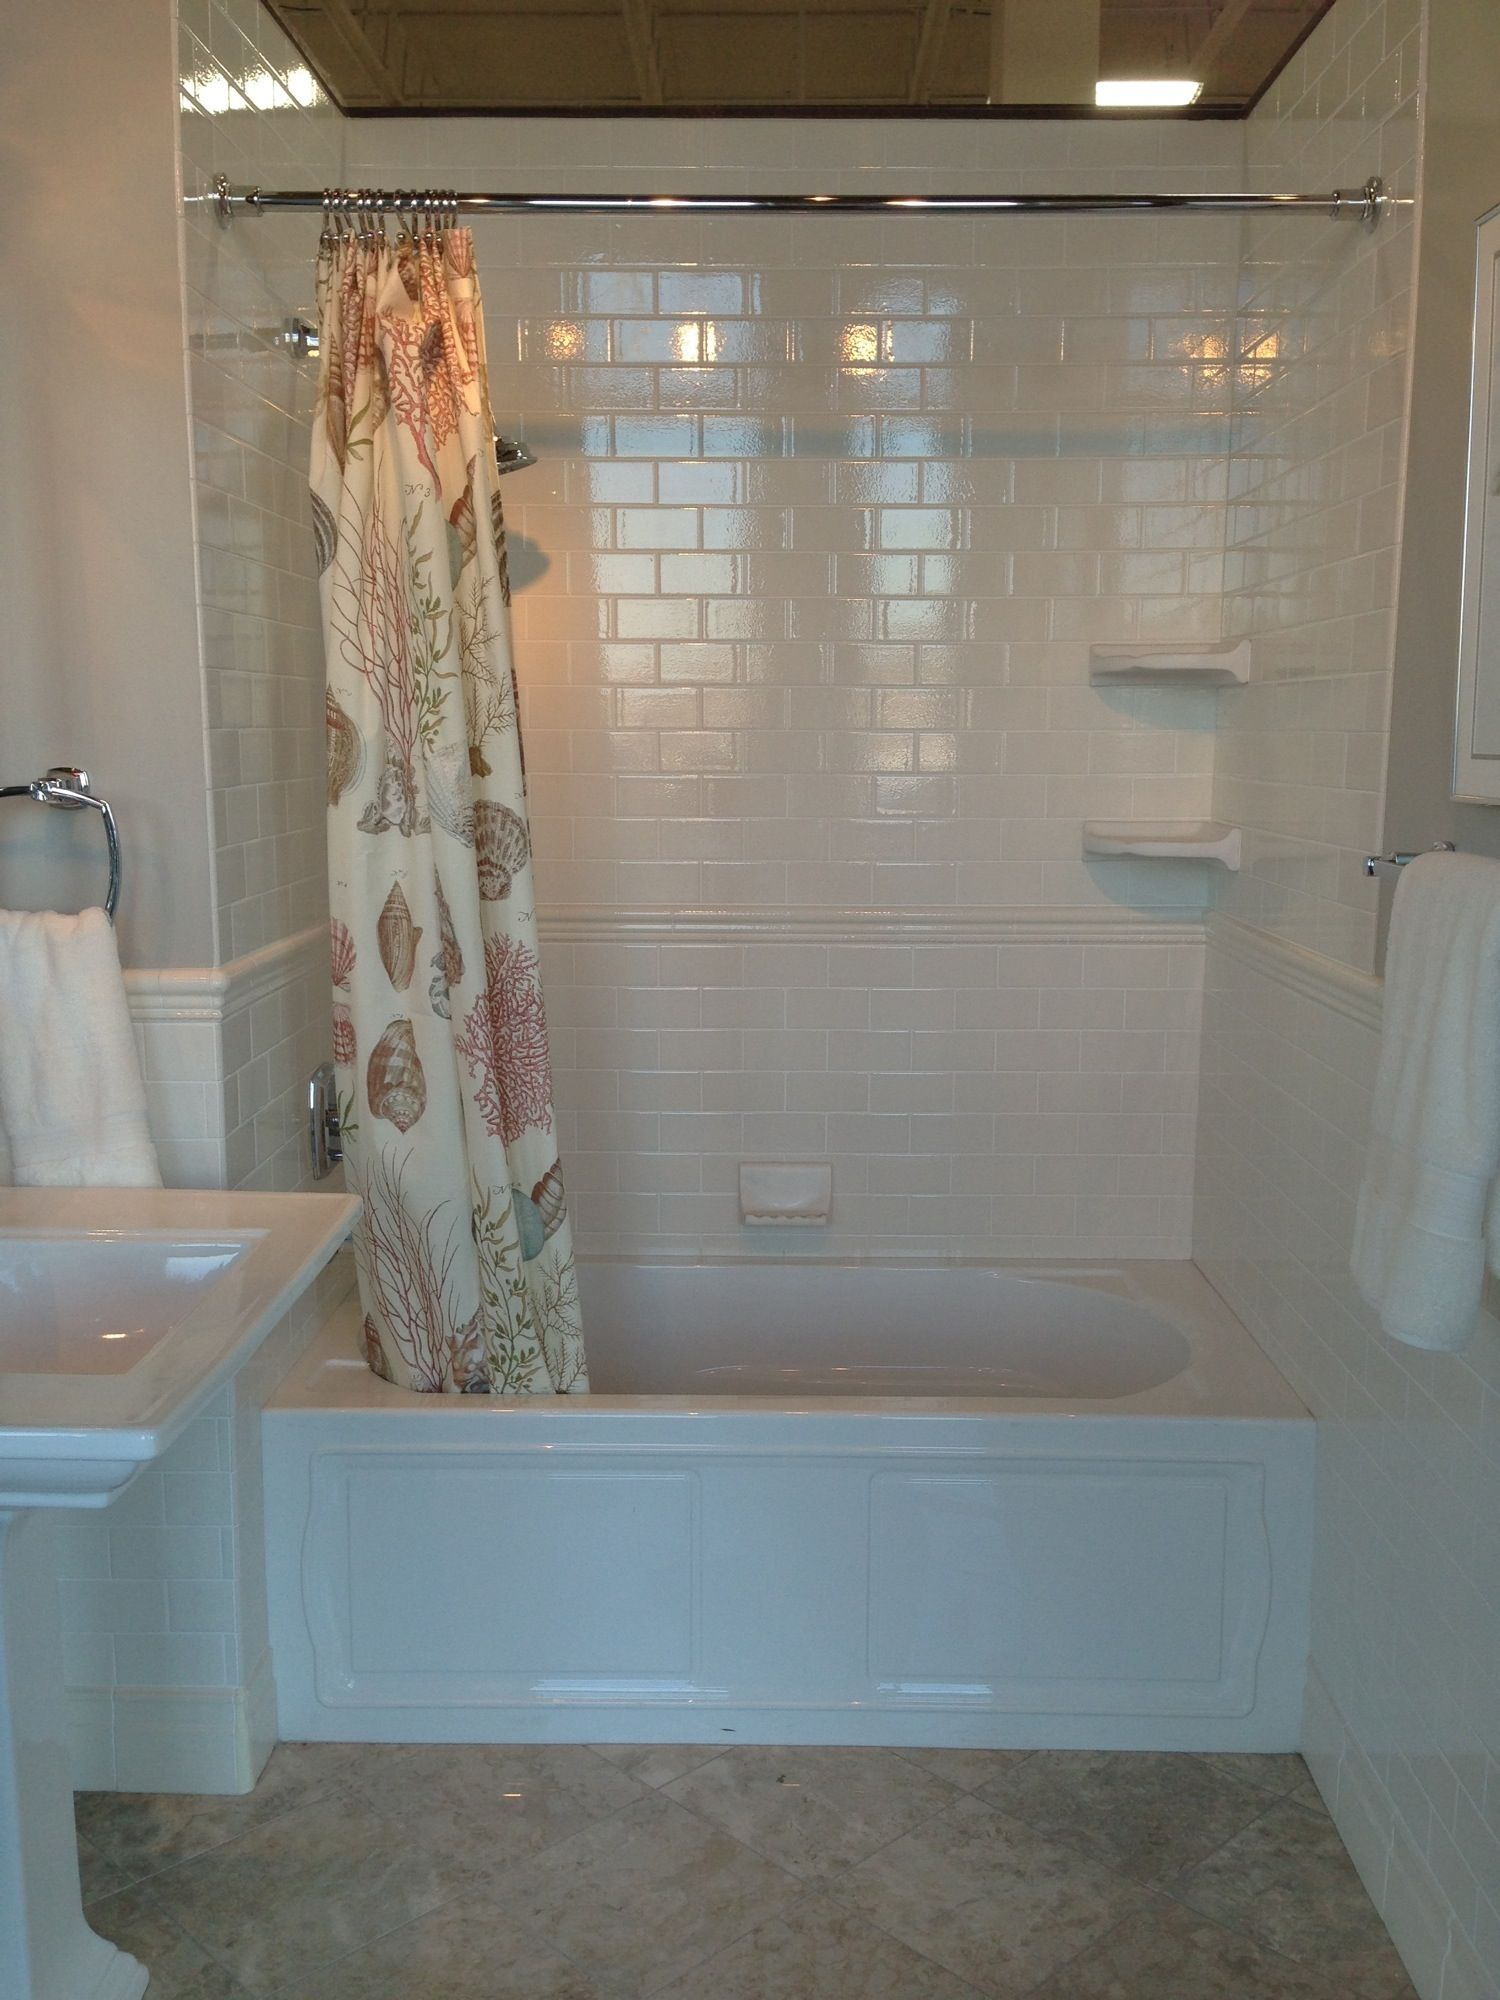 Images Of Bath Tubs With Subway Tile Tiffany Blue Wall